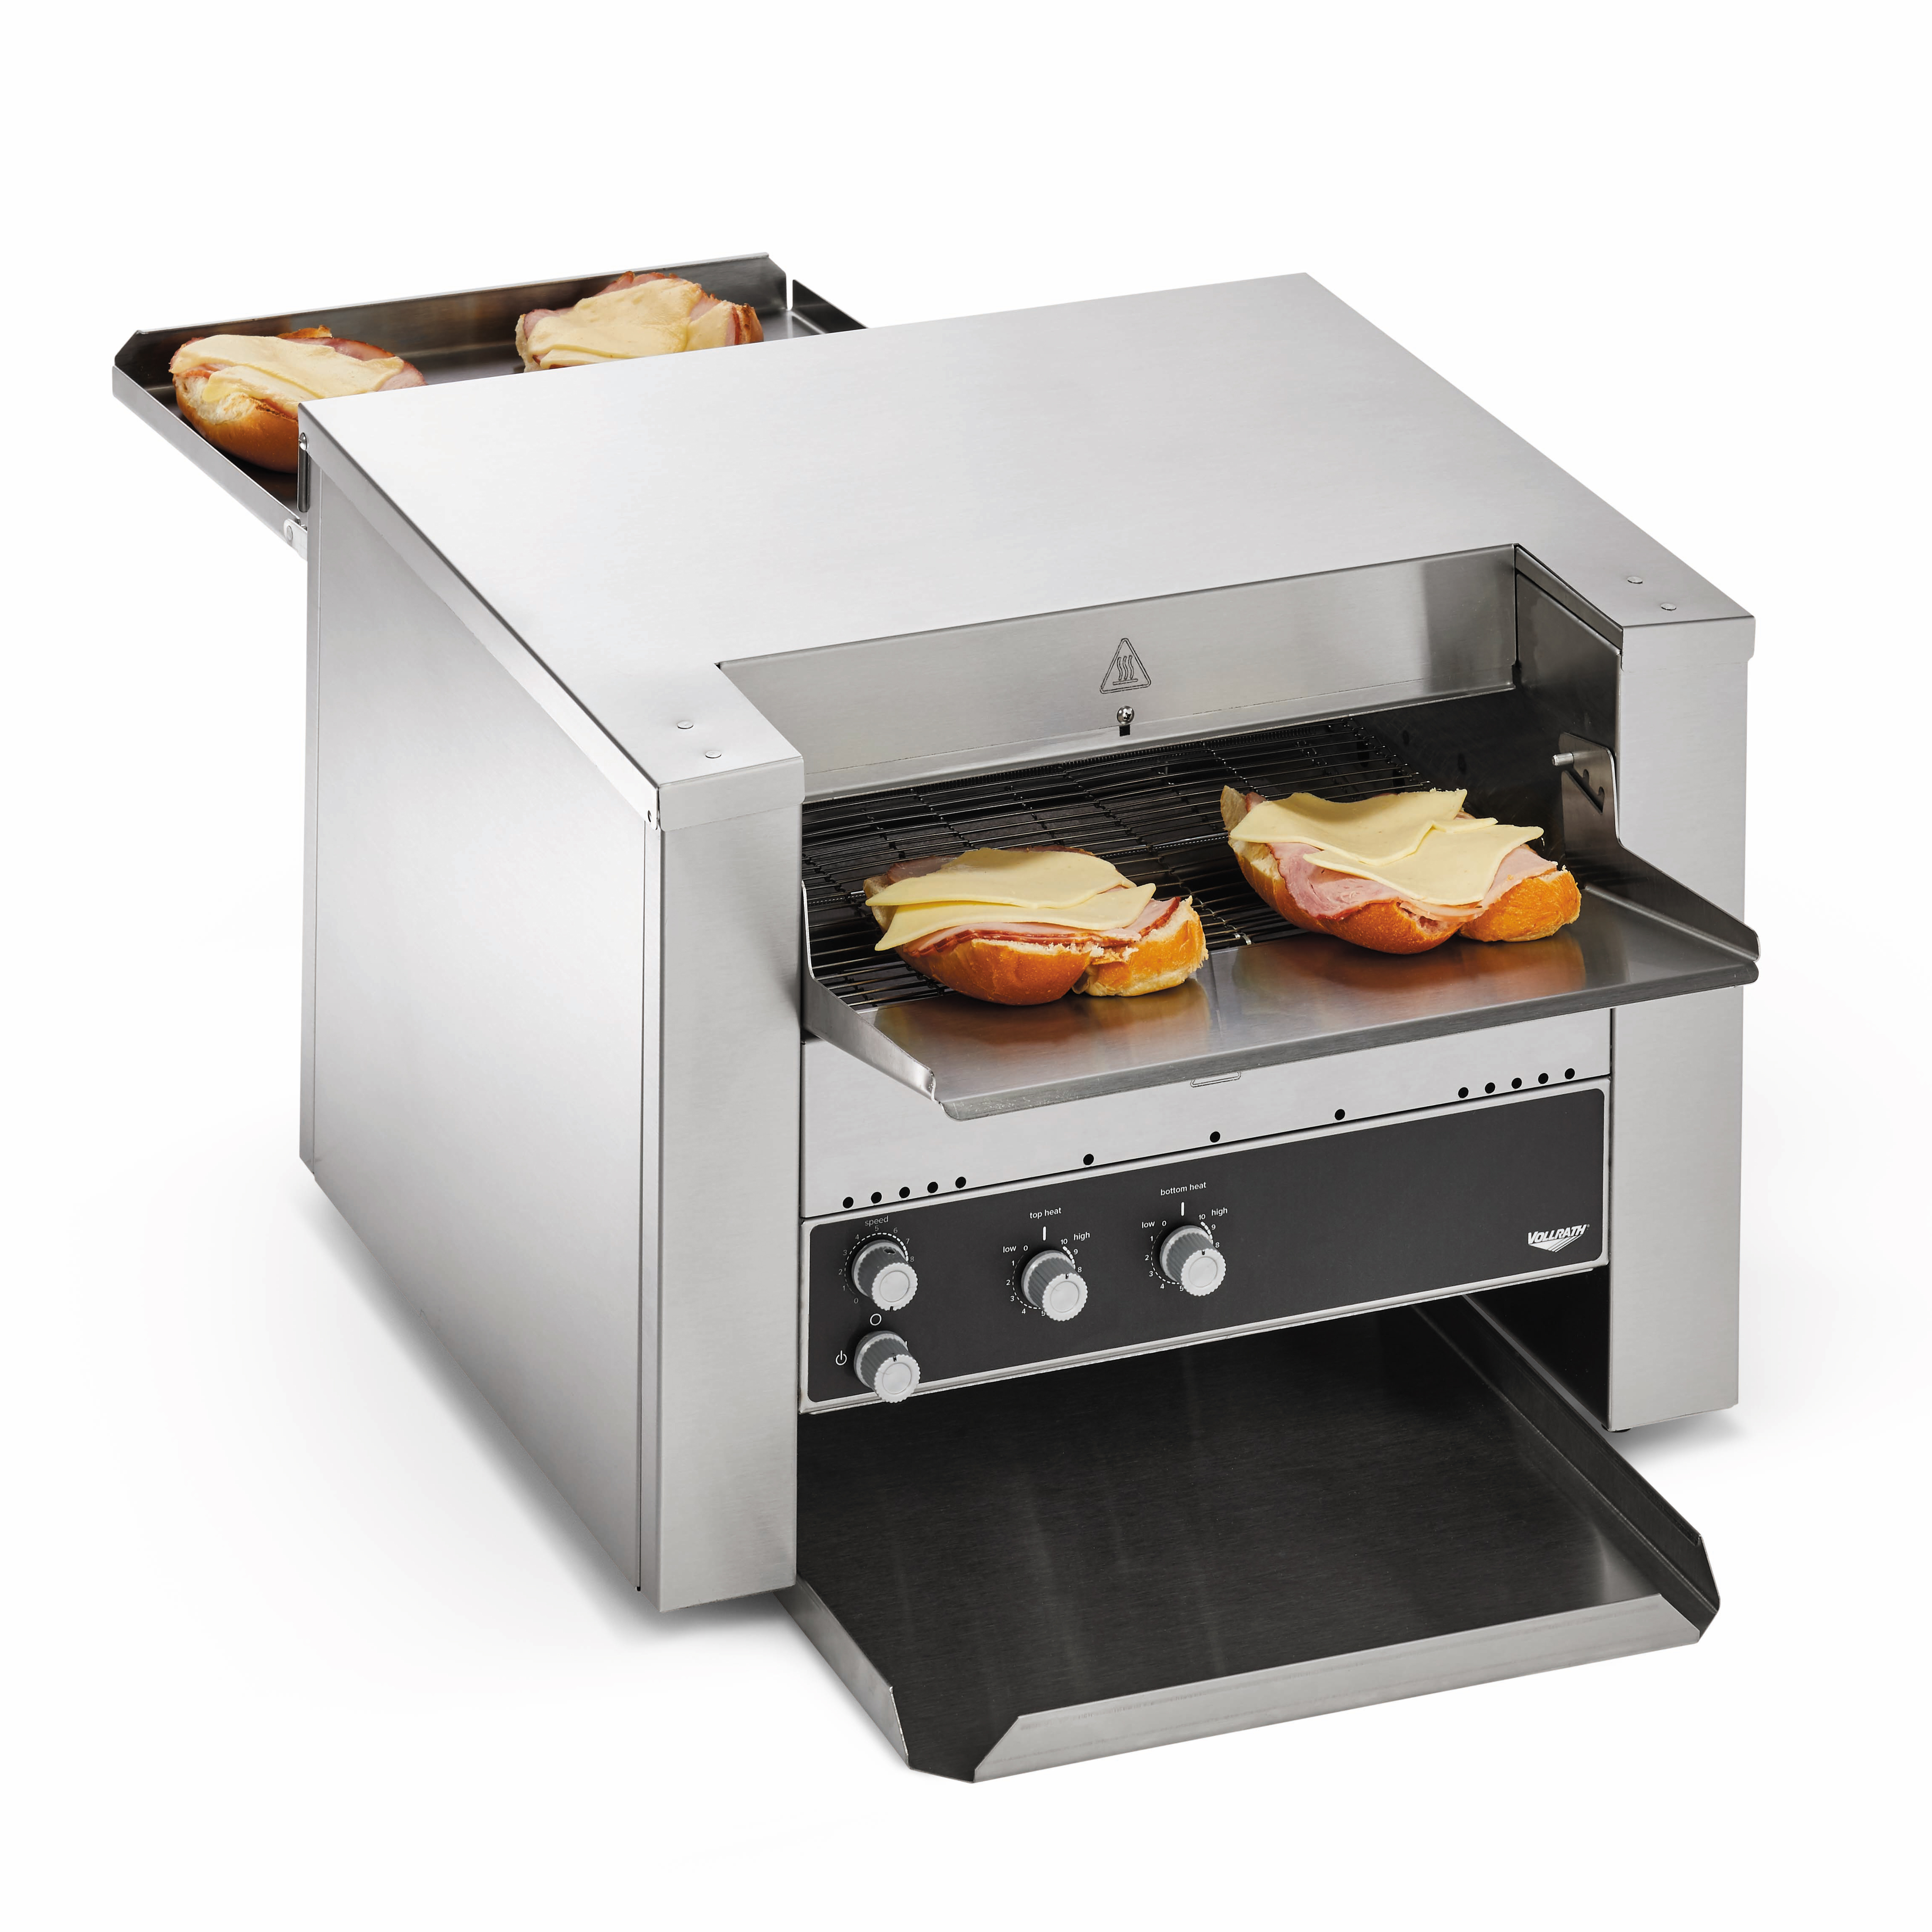 Vollrath CVT4-208900 toaster, conveyor type